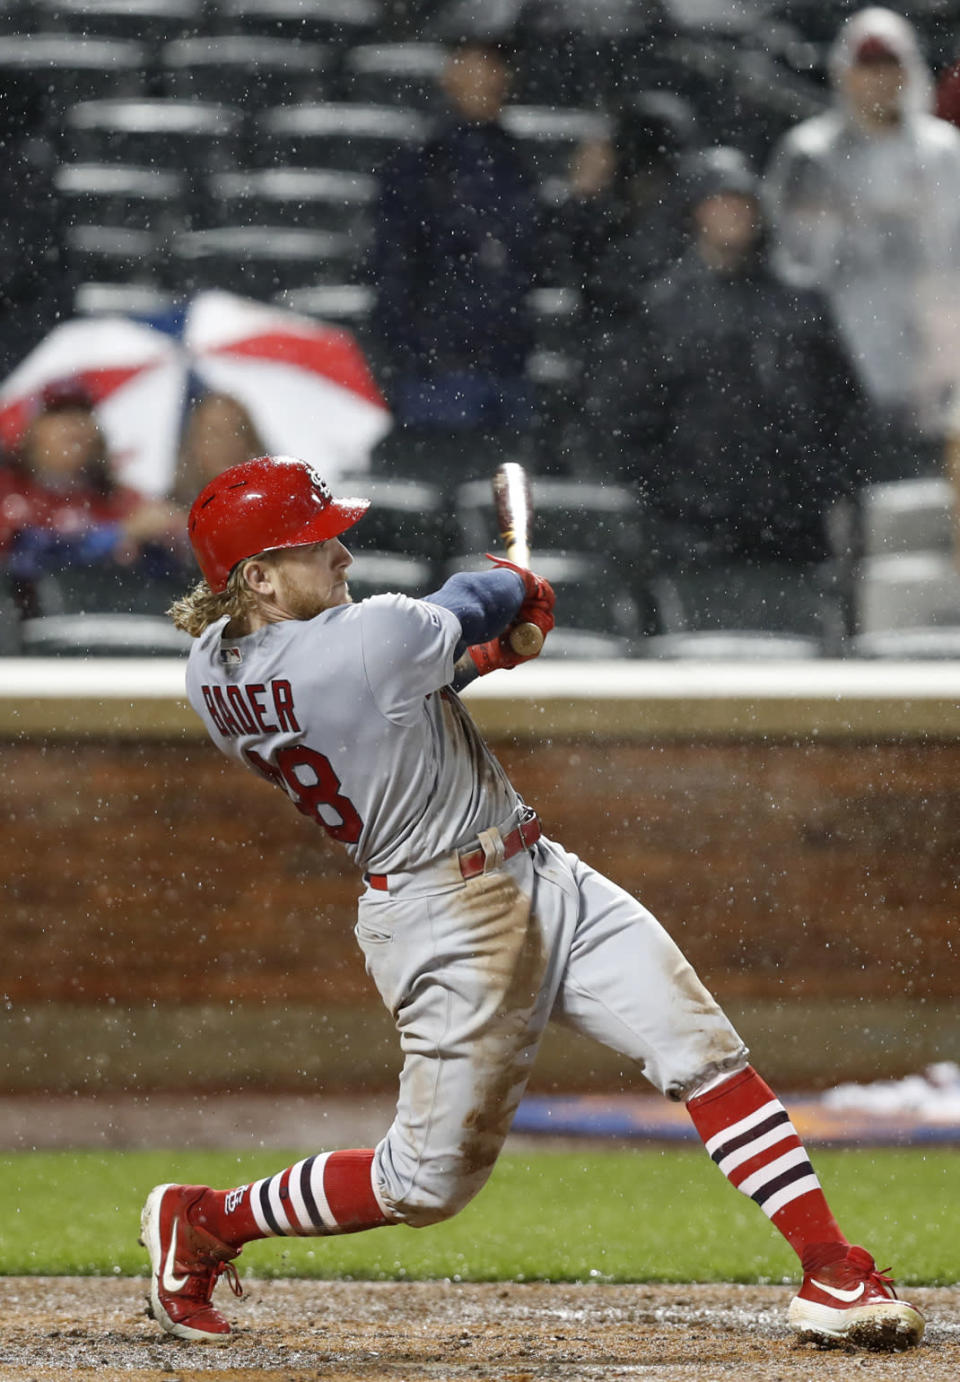 St. Louis Cardinals' Harrison Bader follows through on a ninth inning RBI double against the New York Mets in a baseball game Thursday, June 13, 2019, in New York. (AP Photo/Kathy Willens)